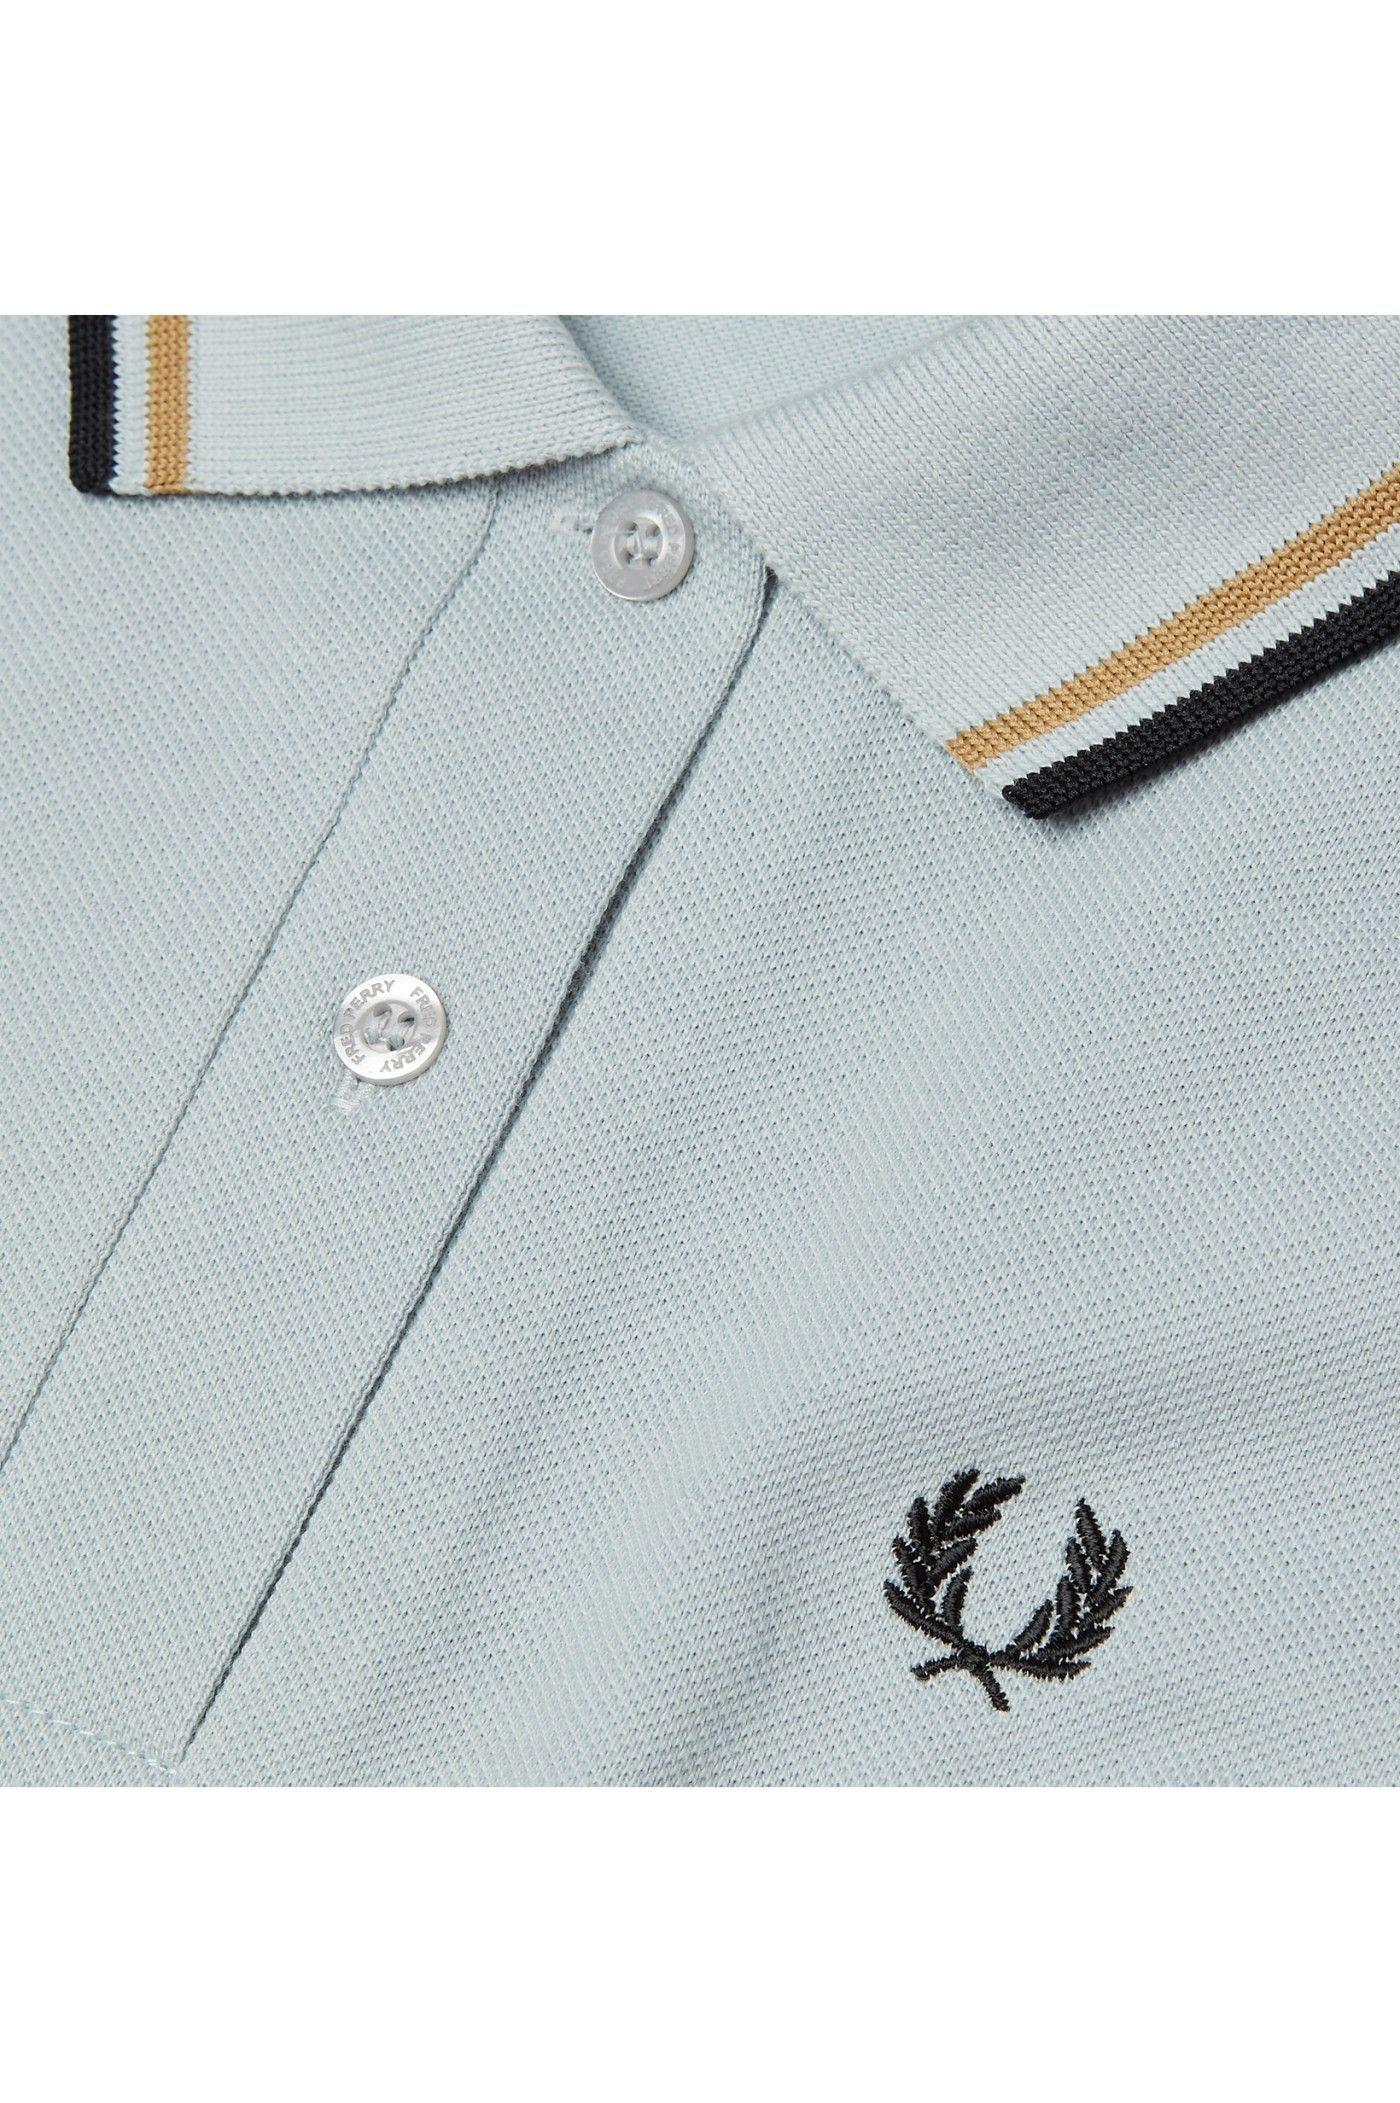 c74caec721c Fred Perry - G12 Silver / 1964 Gold / Black | Clothes